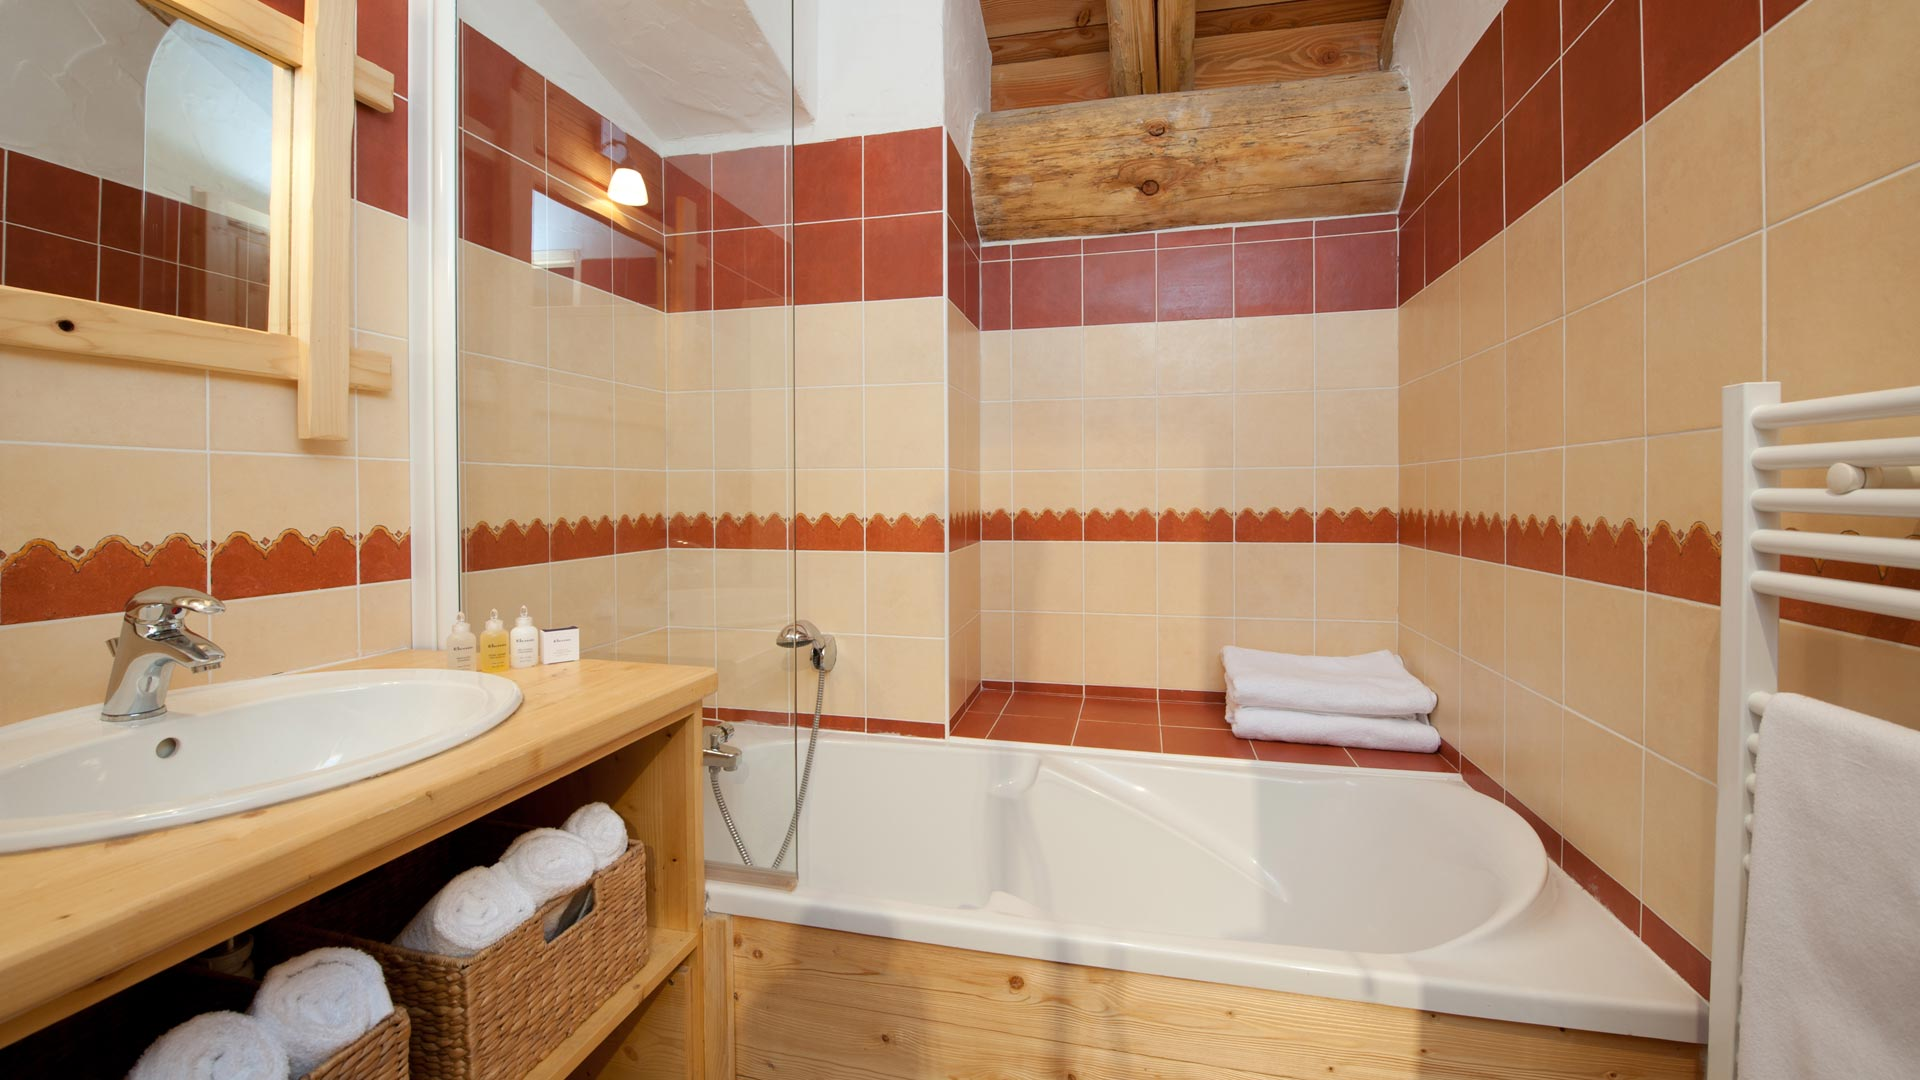 Shared family bathroom in Hirondelles Apt. in Sainte Foy